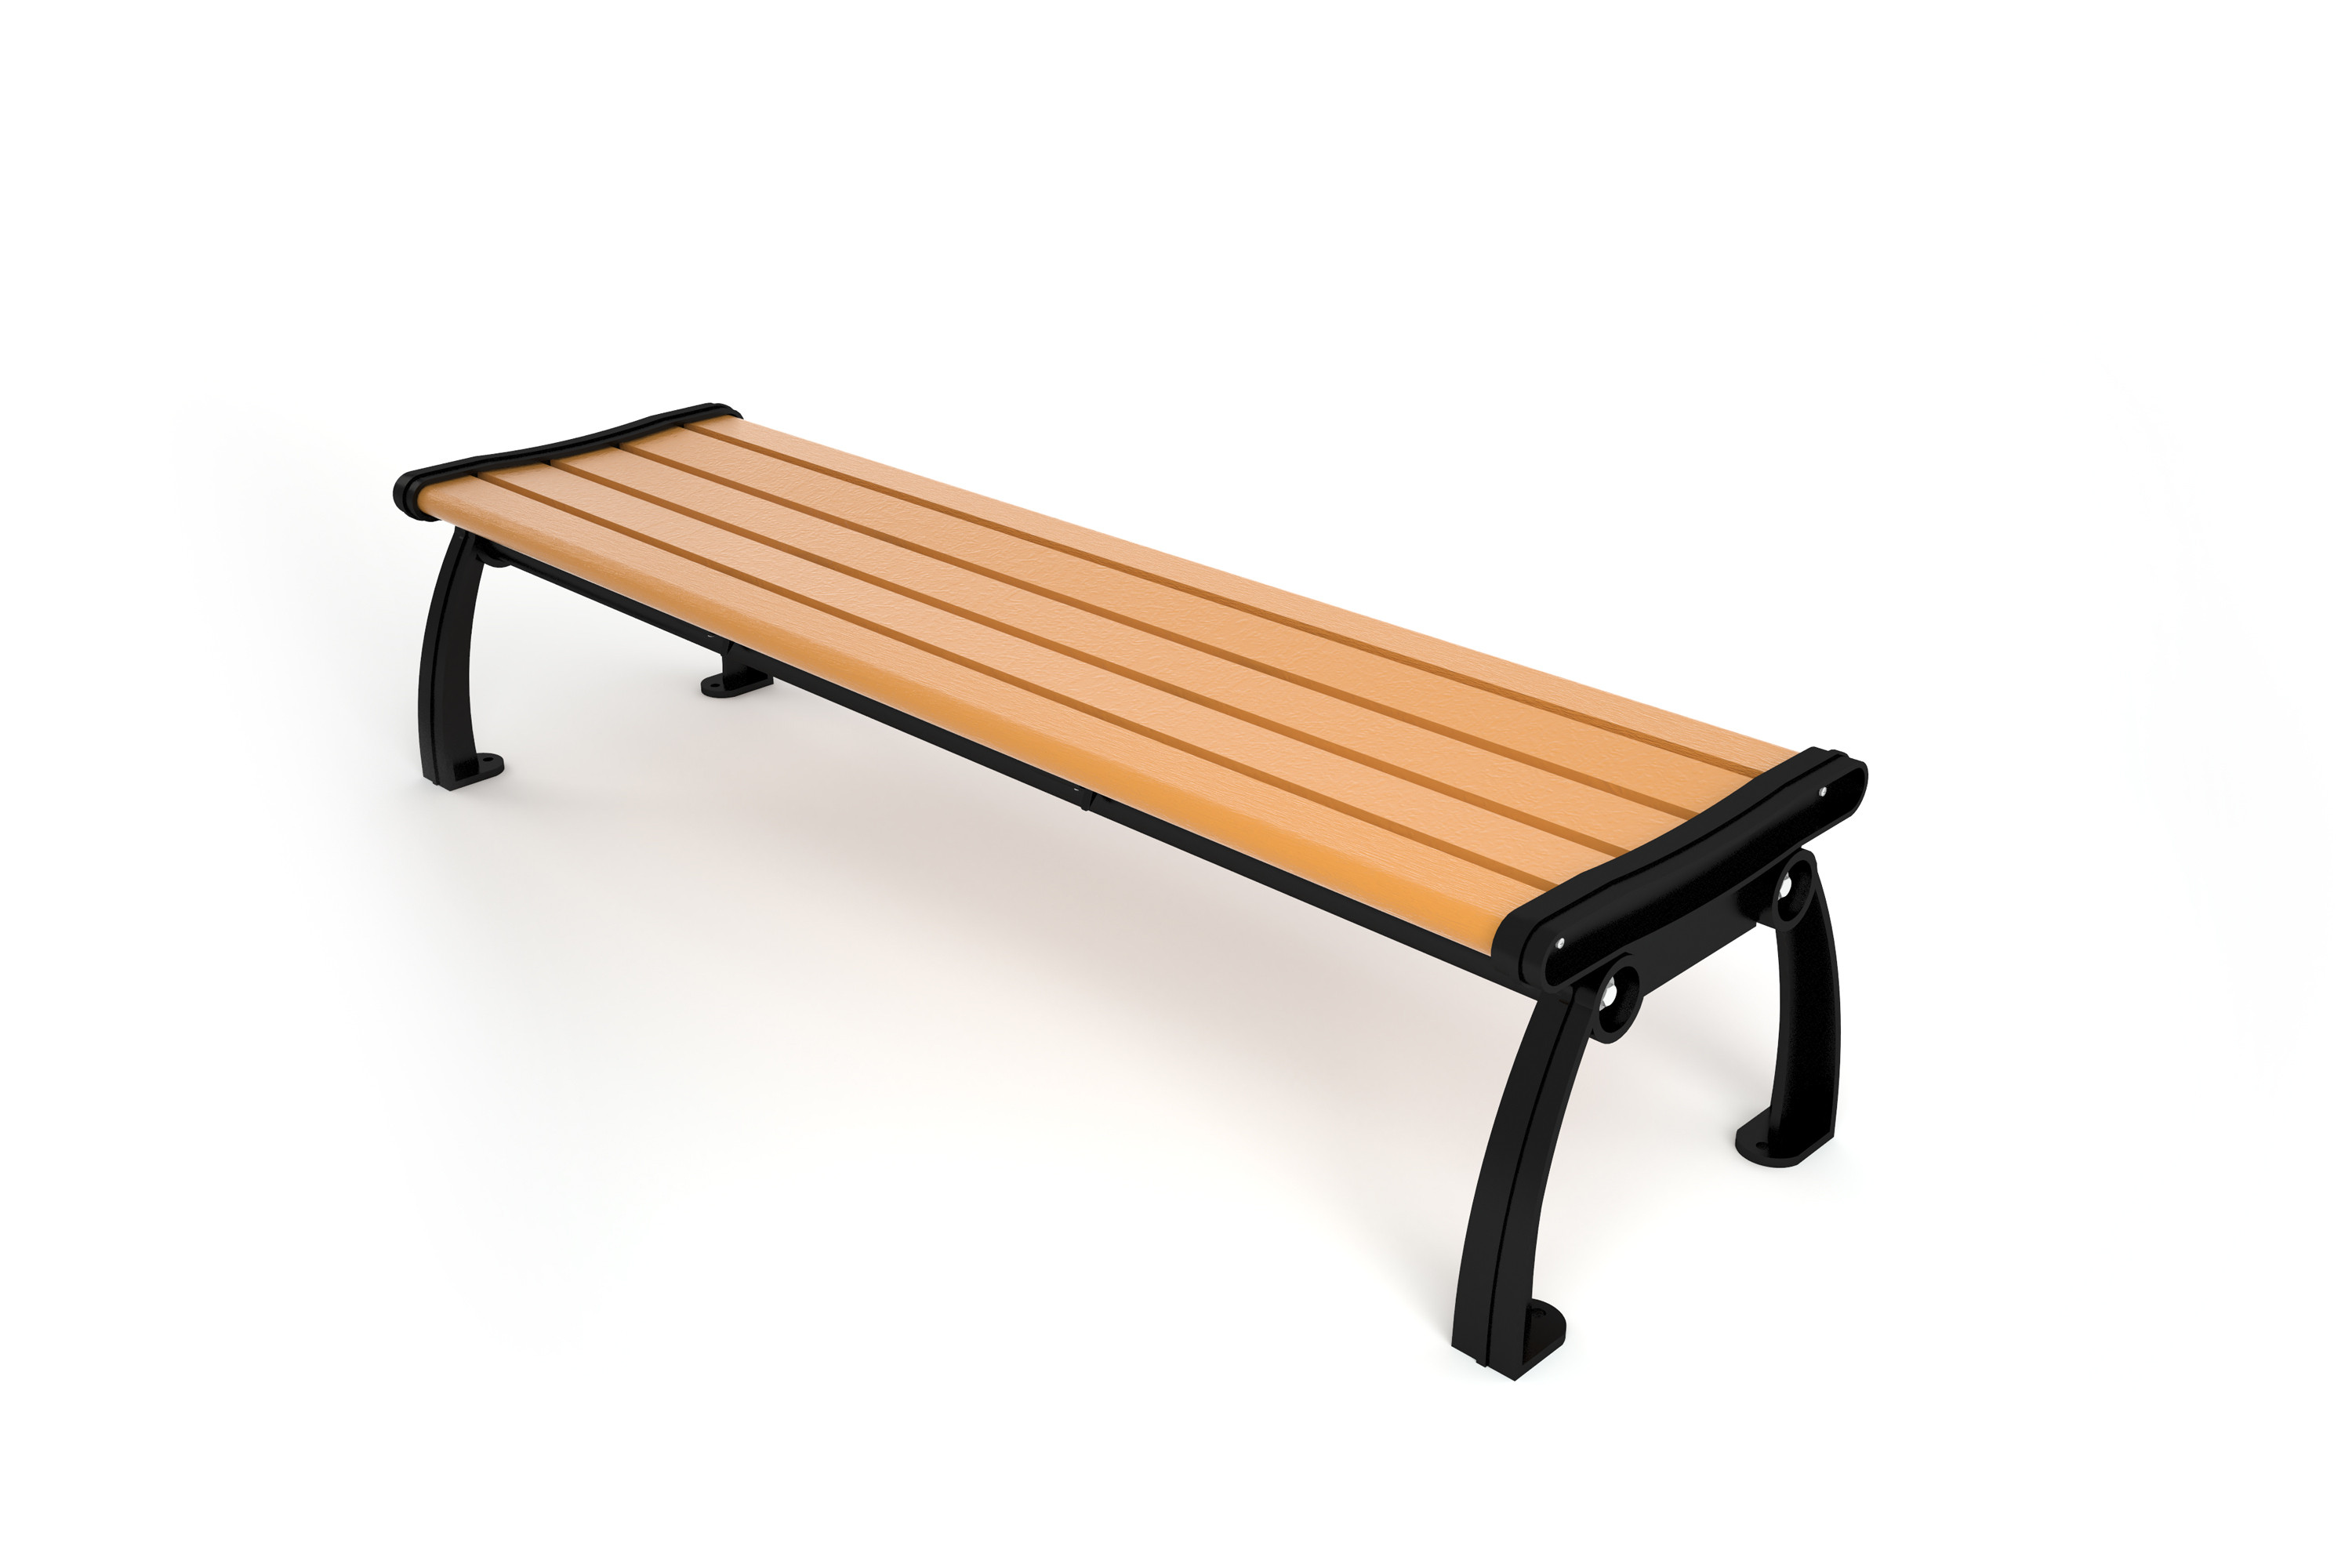 Heritage Recycled Plastic Backless Bench